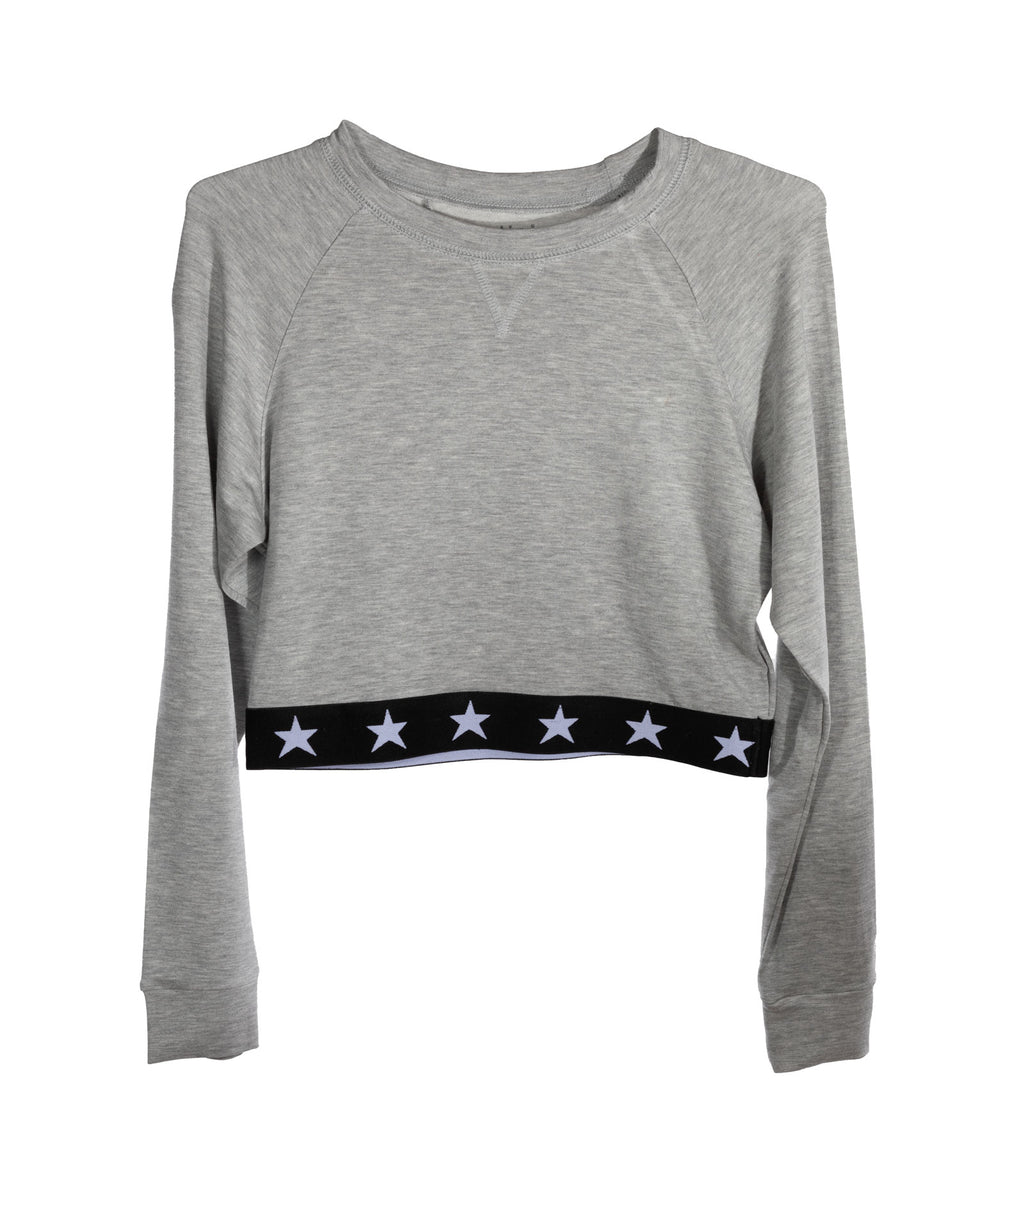 Katie J NYC Girls Grey Star Waist Top